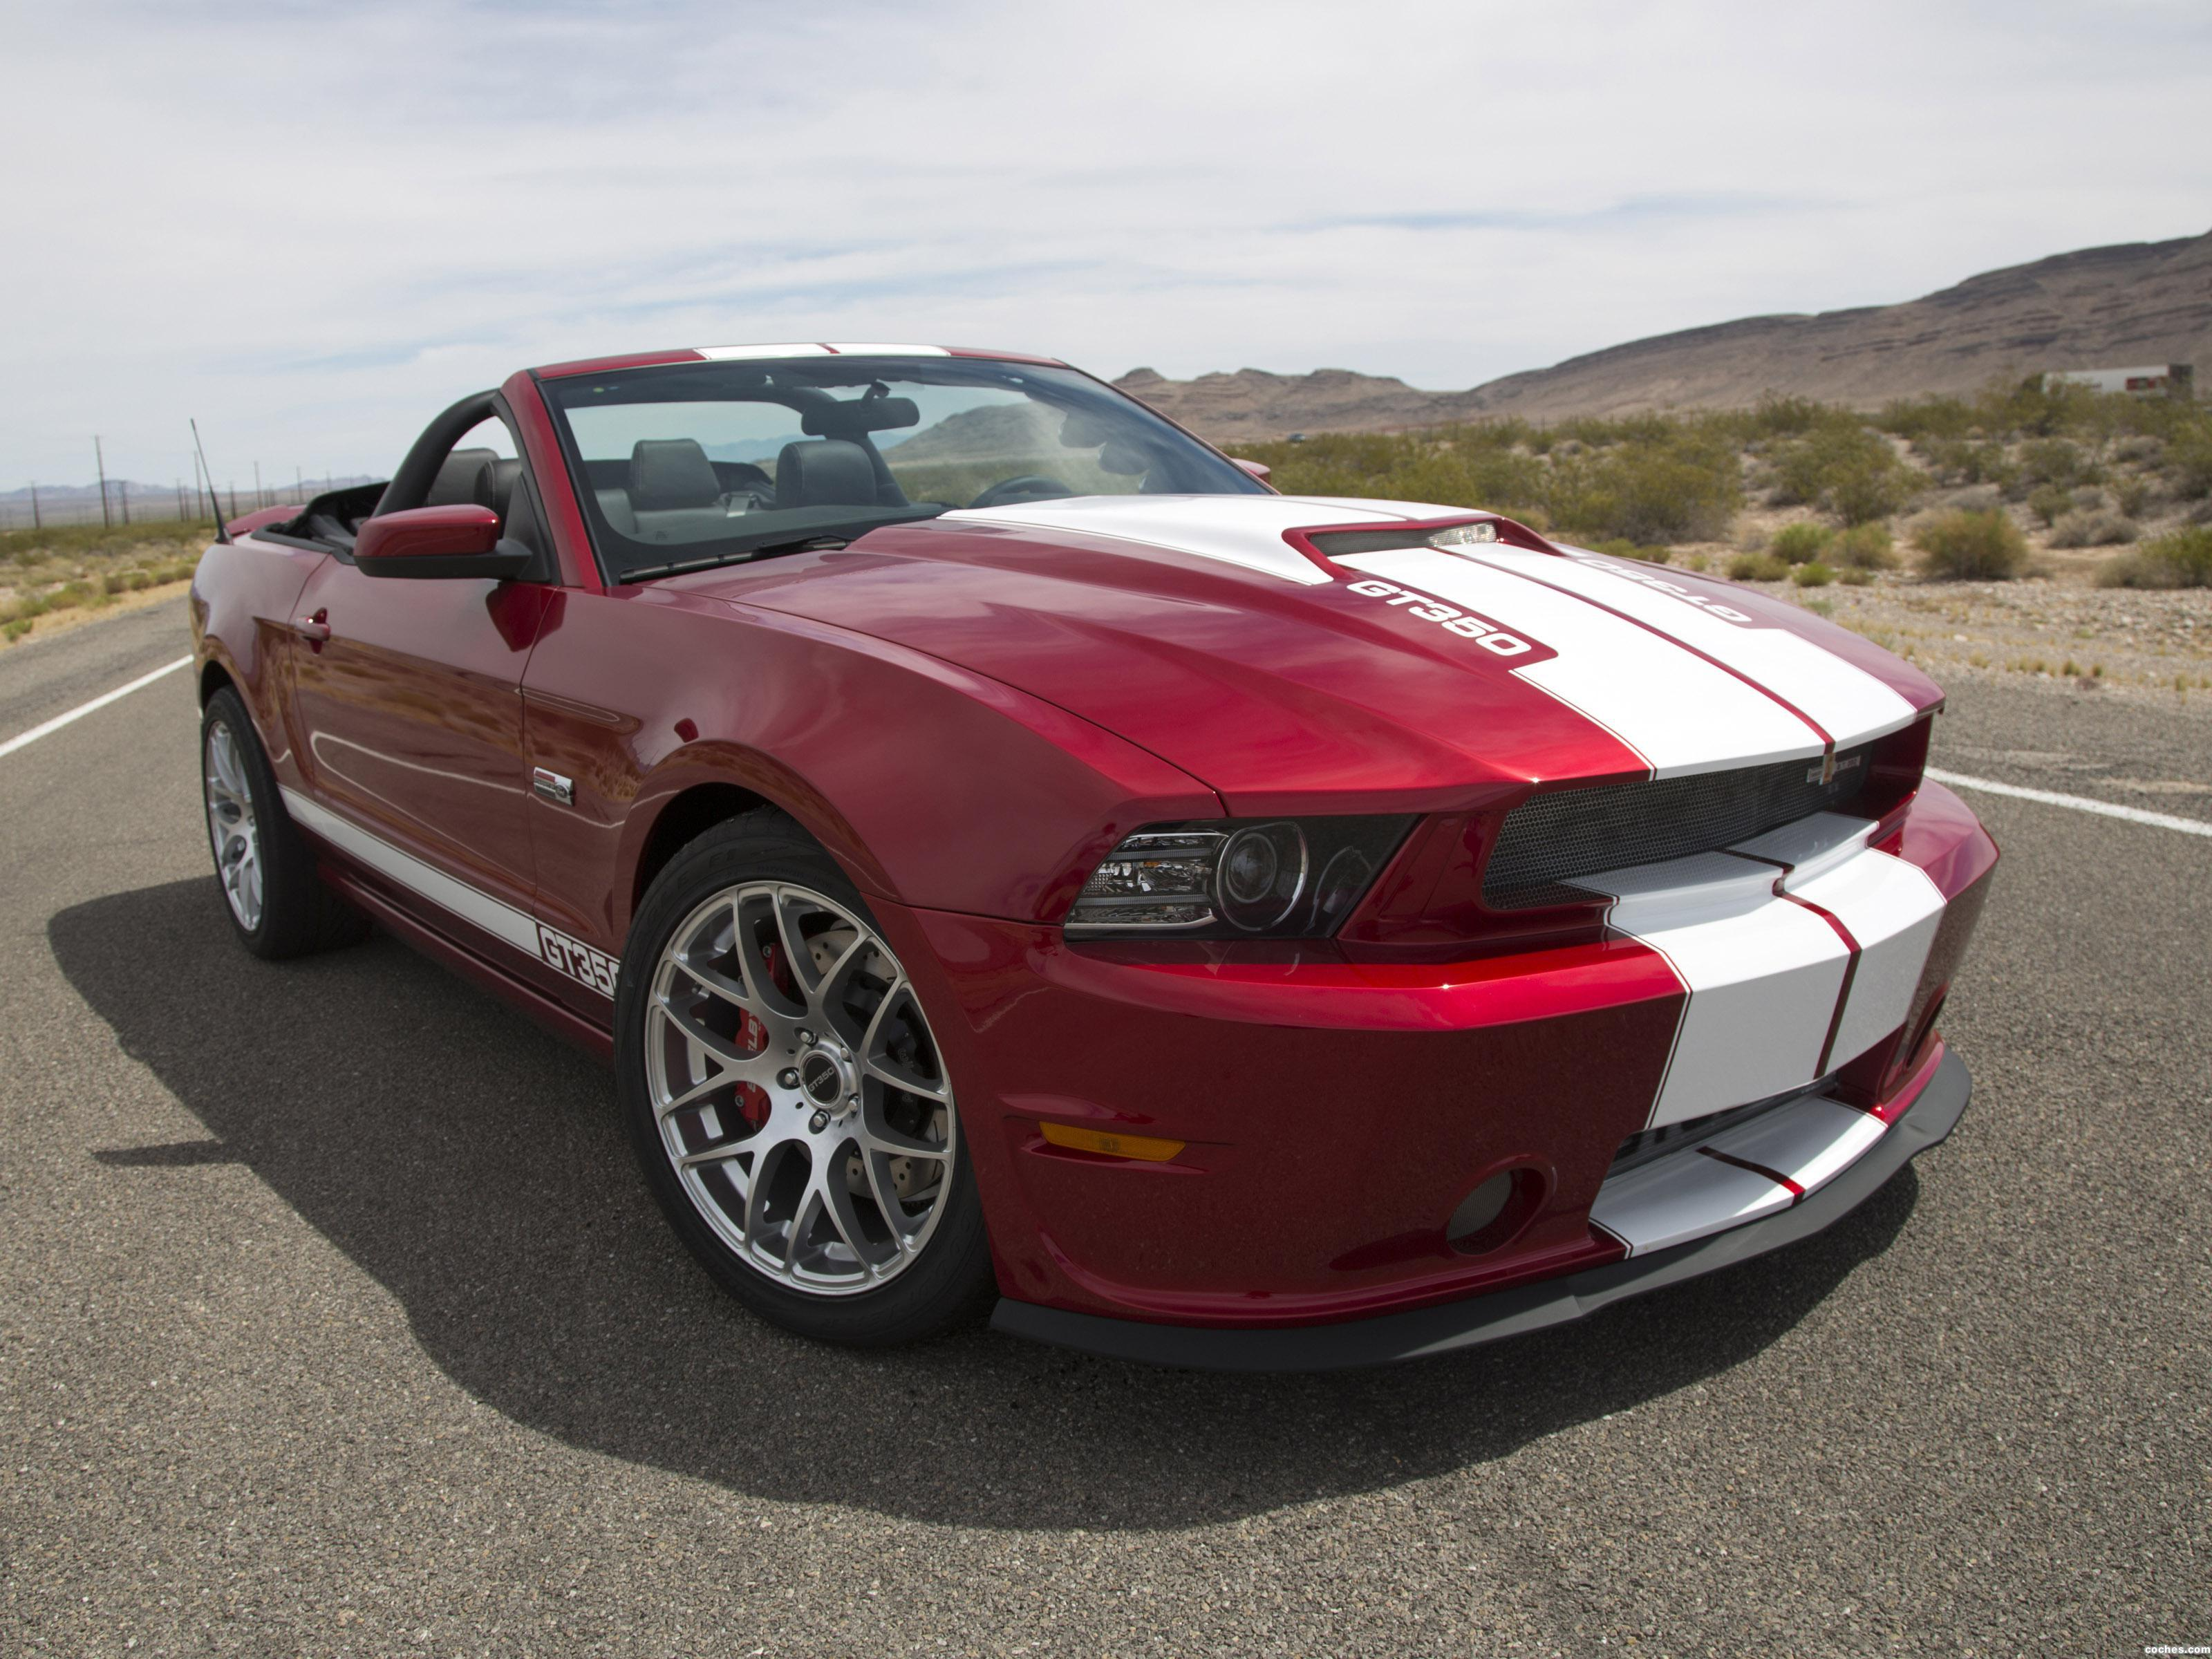 Foto 0 de Ford Shelby Mustang GT350 Convertible 2013